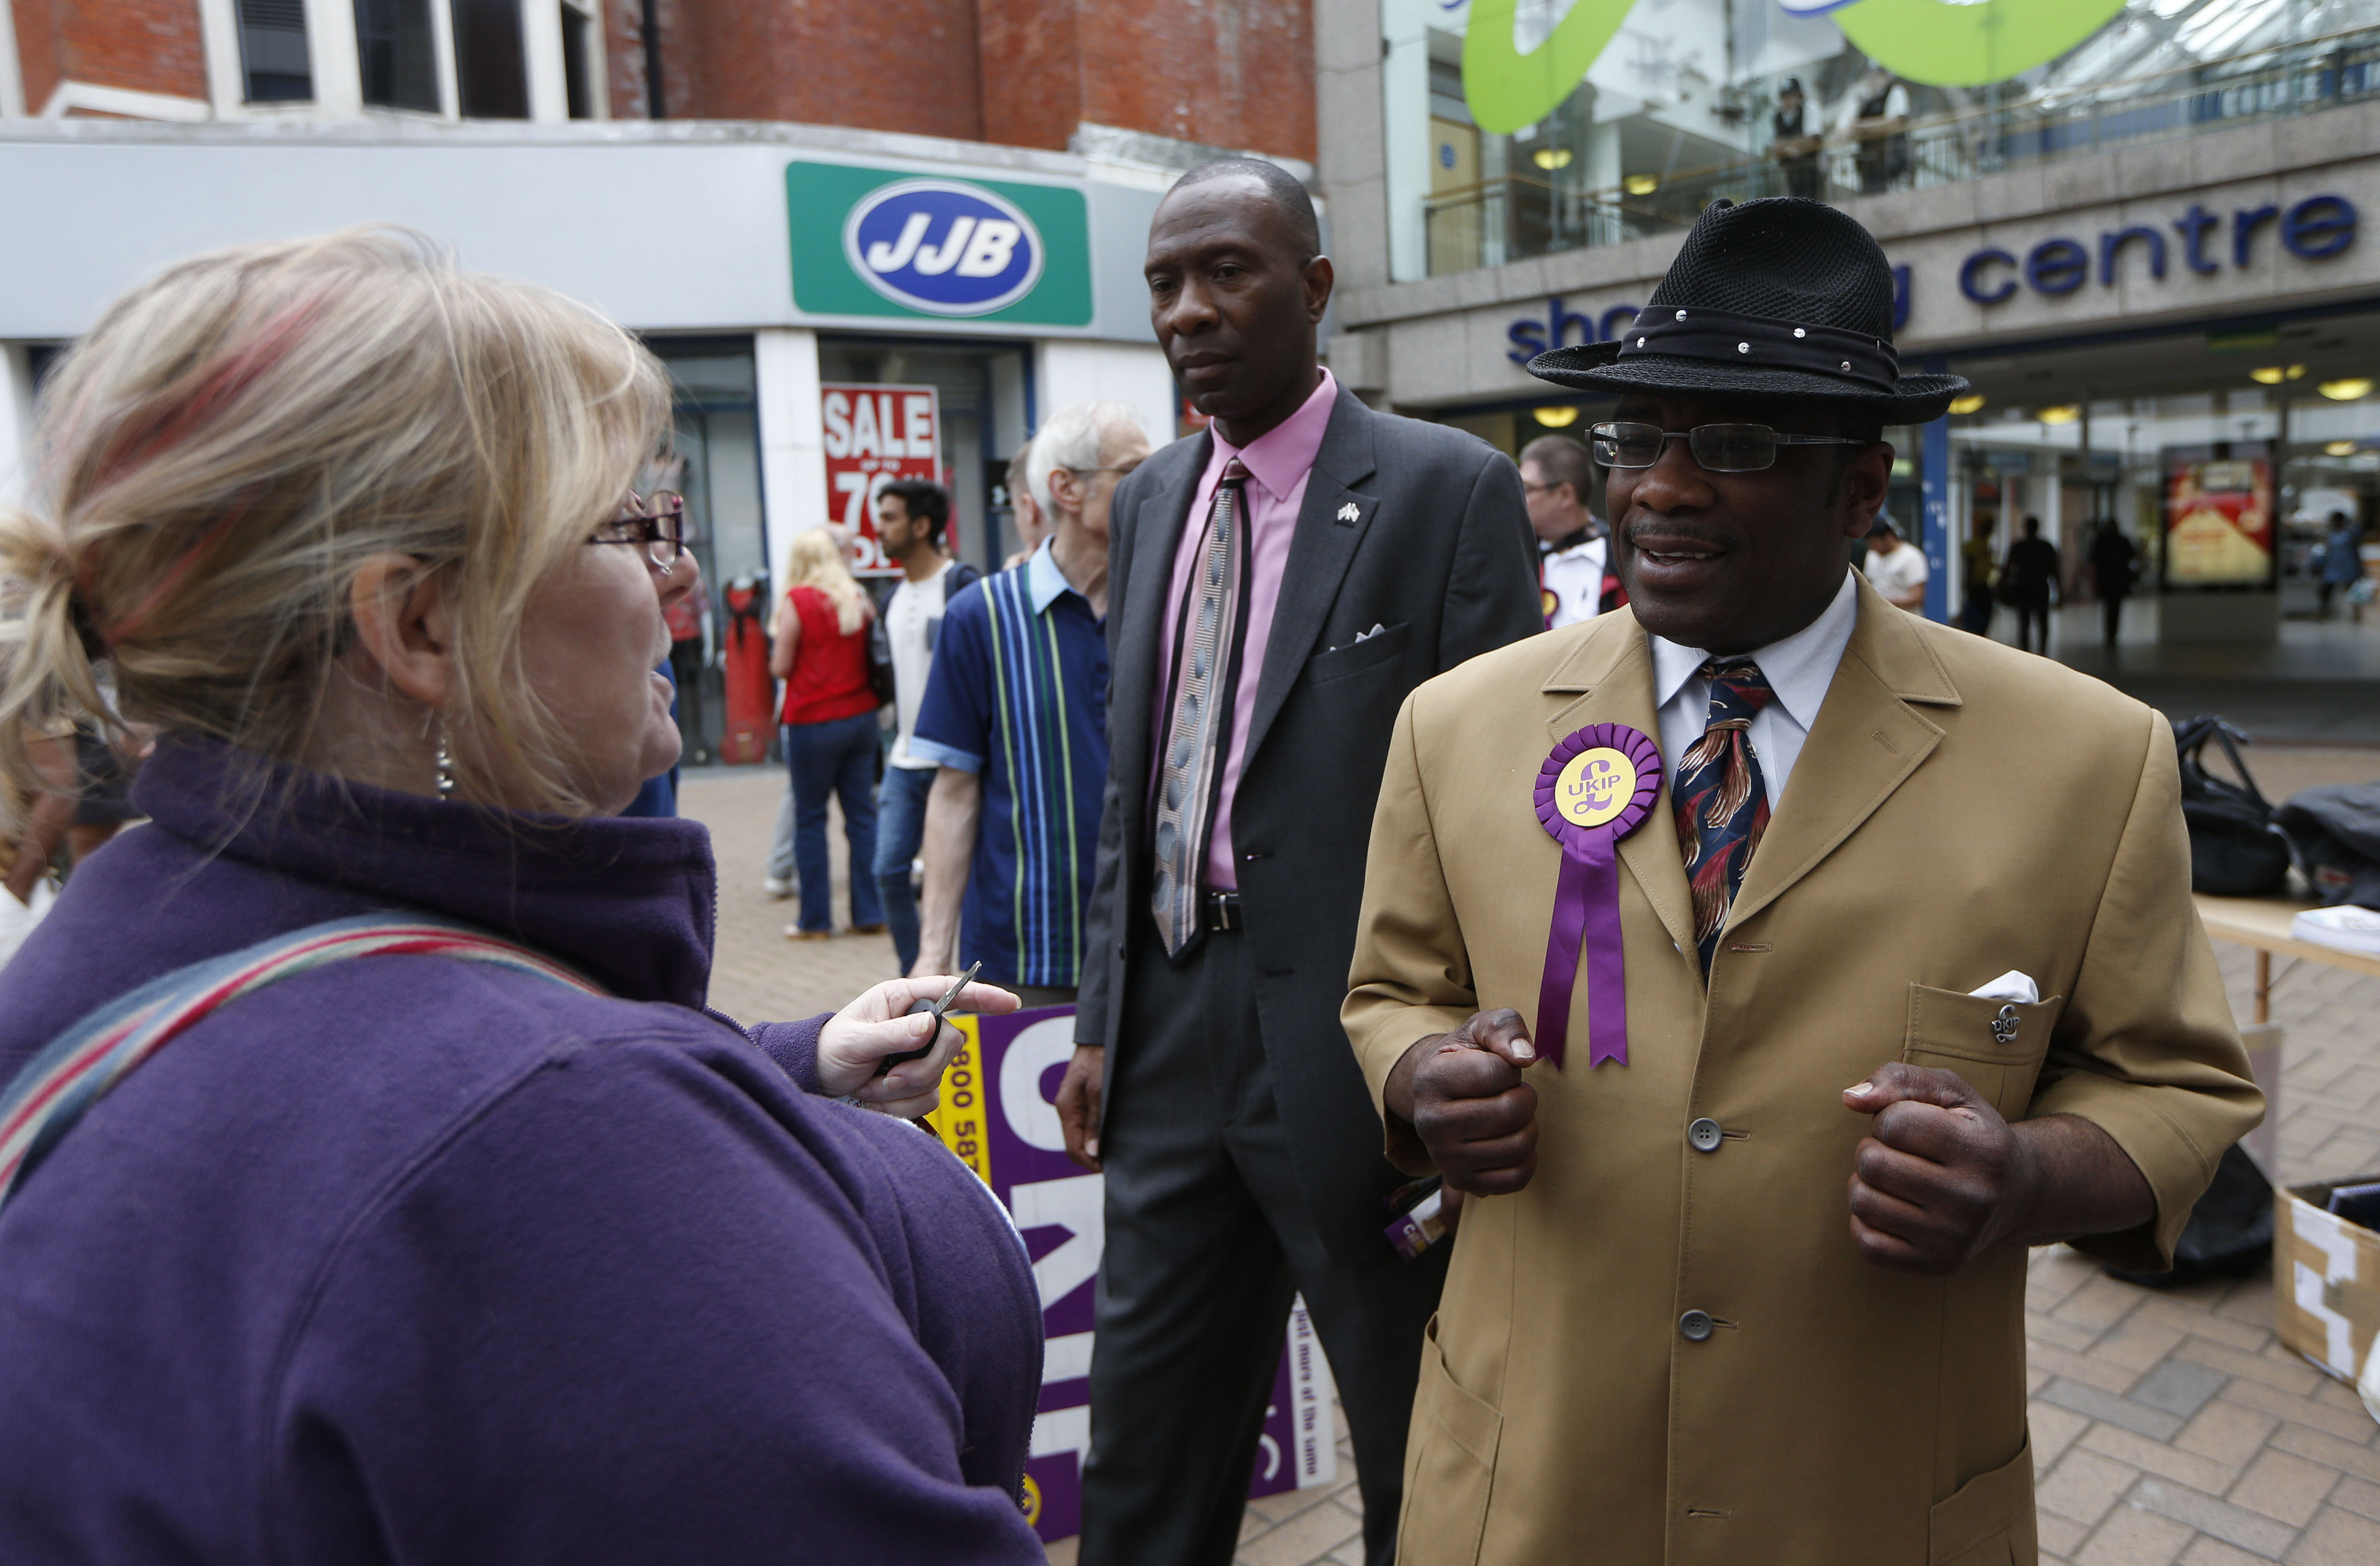 Prominent Black UKIP Member Quits Party Due To Racial Discrimination UNILAD Sang TanPA Images29714